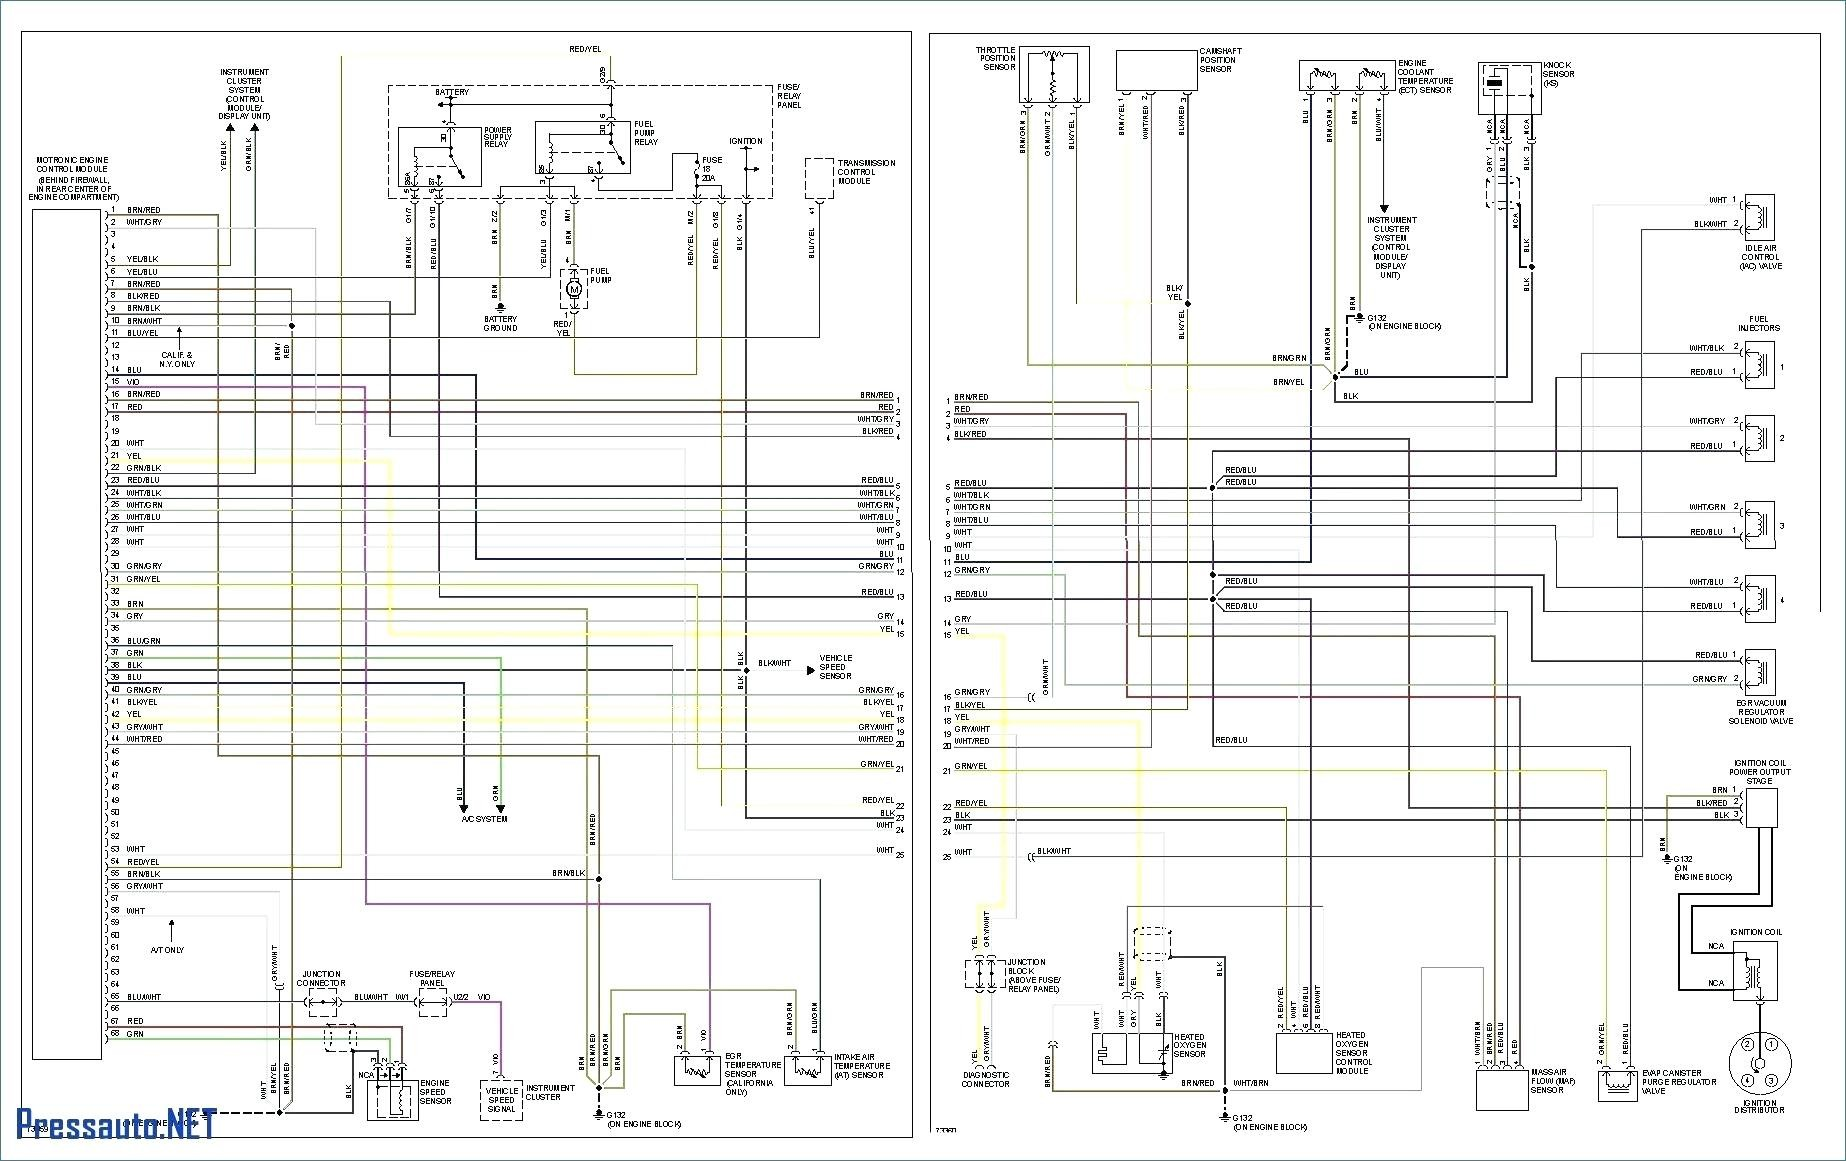 DIAGRAM] 84 Vw Jetta Wiring Diagram Free Download FULL Version HD Quality Free  Download - IPHONEMEI.CGT-FAPT37.FRiphonemei.cgt-fapt37.fr